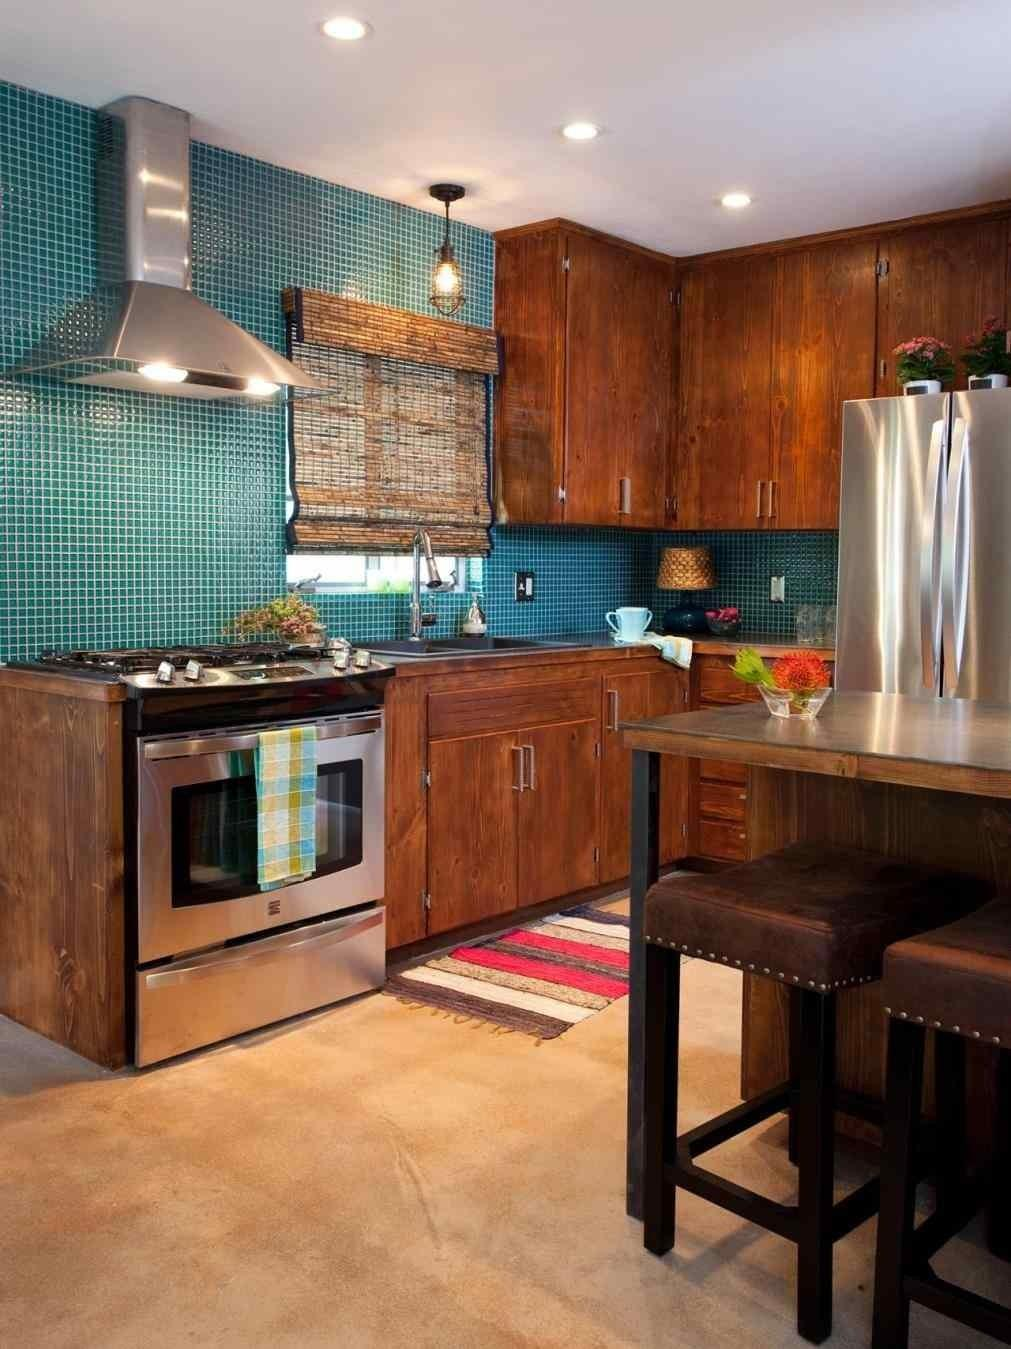 Living Room Ideas Rustic Red Kitchen Decor